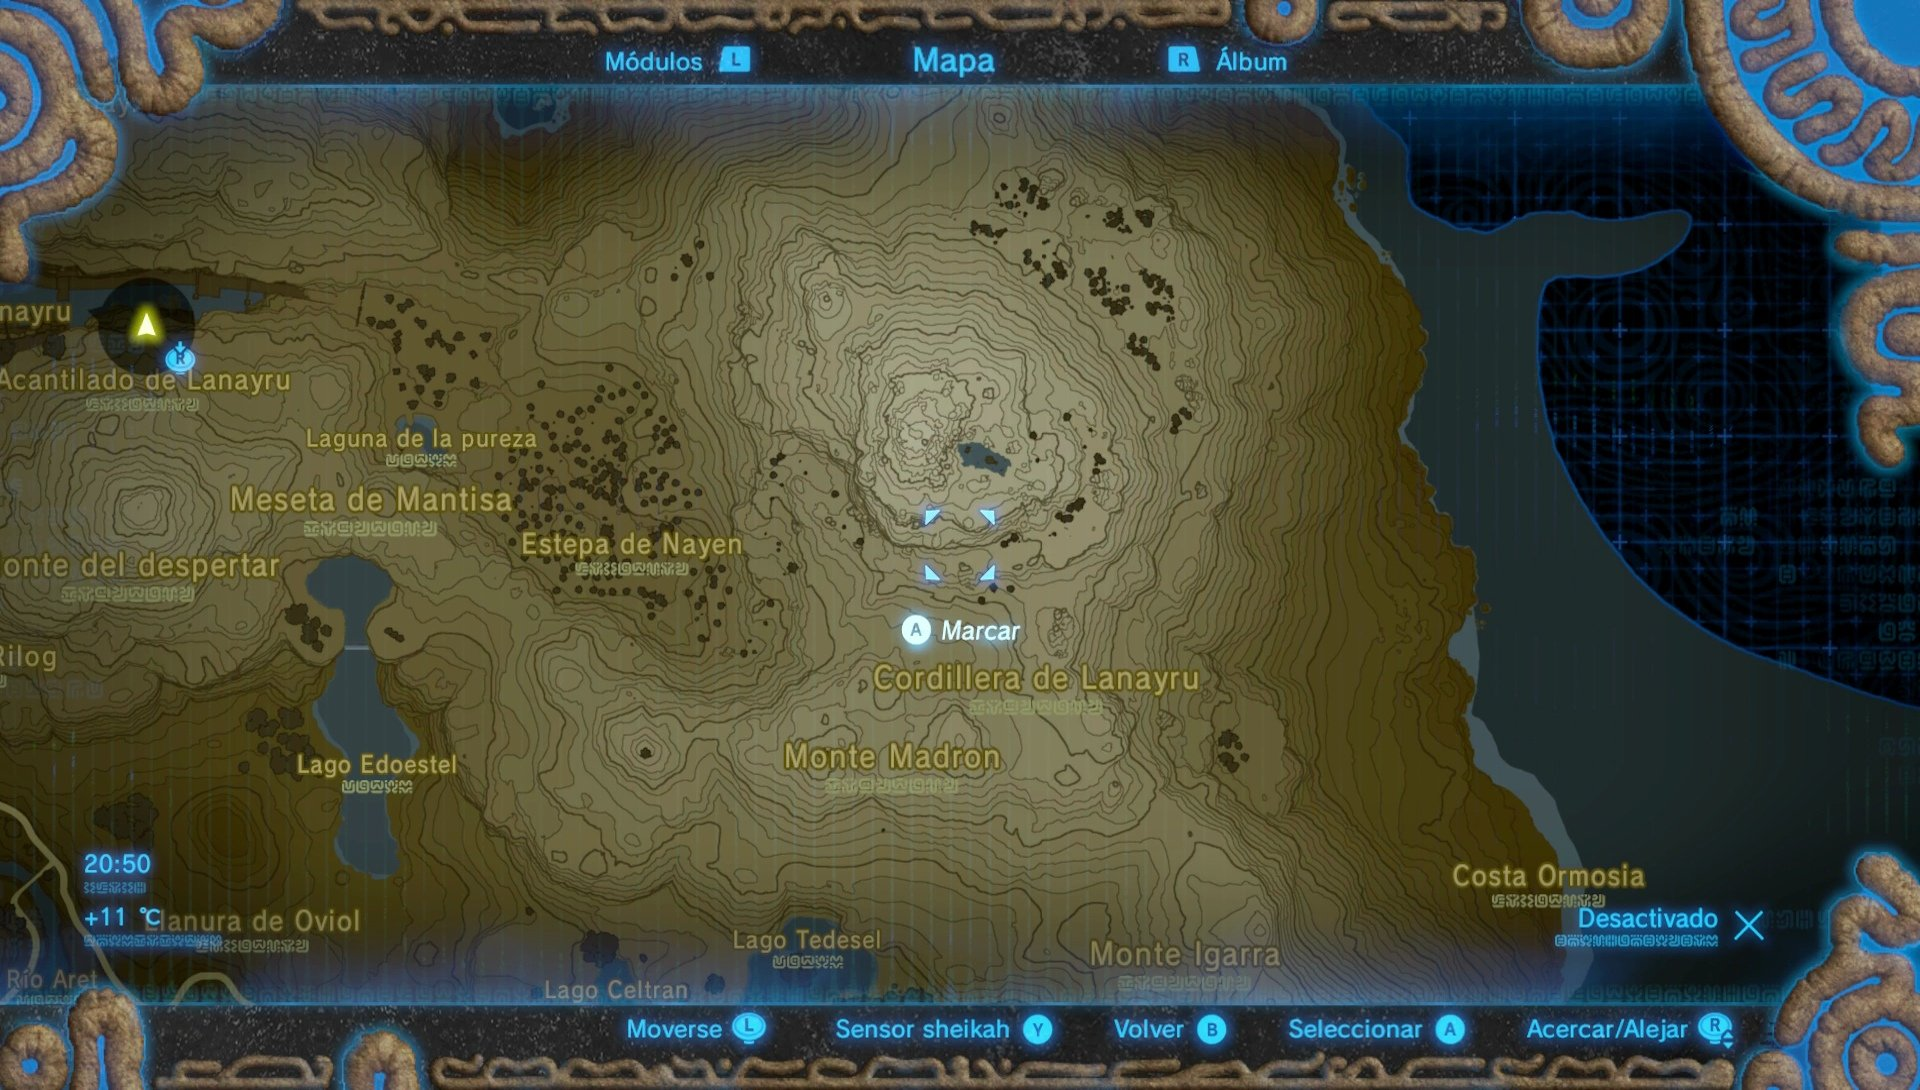 the legend of zelda map with The Legend Of Zelda Breath Of The Wild on New Zelda Breath Of The Wild Screenshots Closer Look At Hyrules Map further Zelda hyrule map key i  pleted besides Ultimate Hyrule Overworld Map 587754253 moreover Pokemon Emerald Advance Map Tileset Guide besides Ganons Castle Or Devilstower.